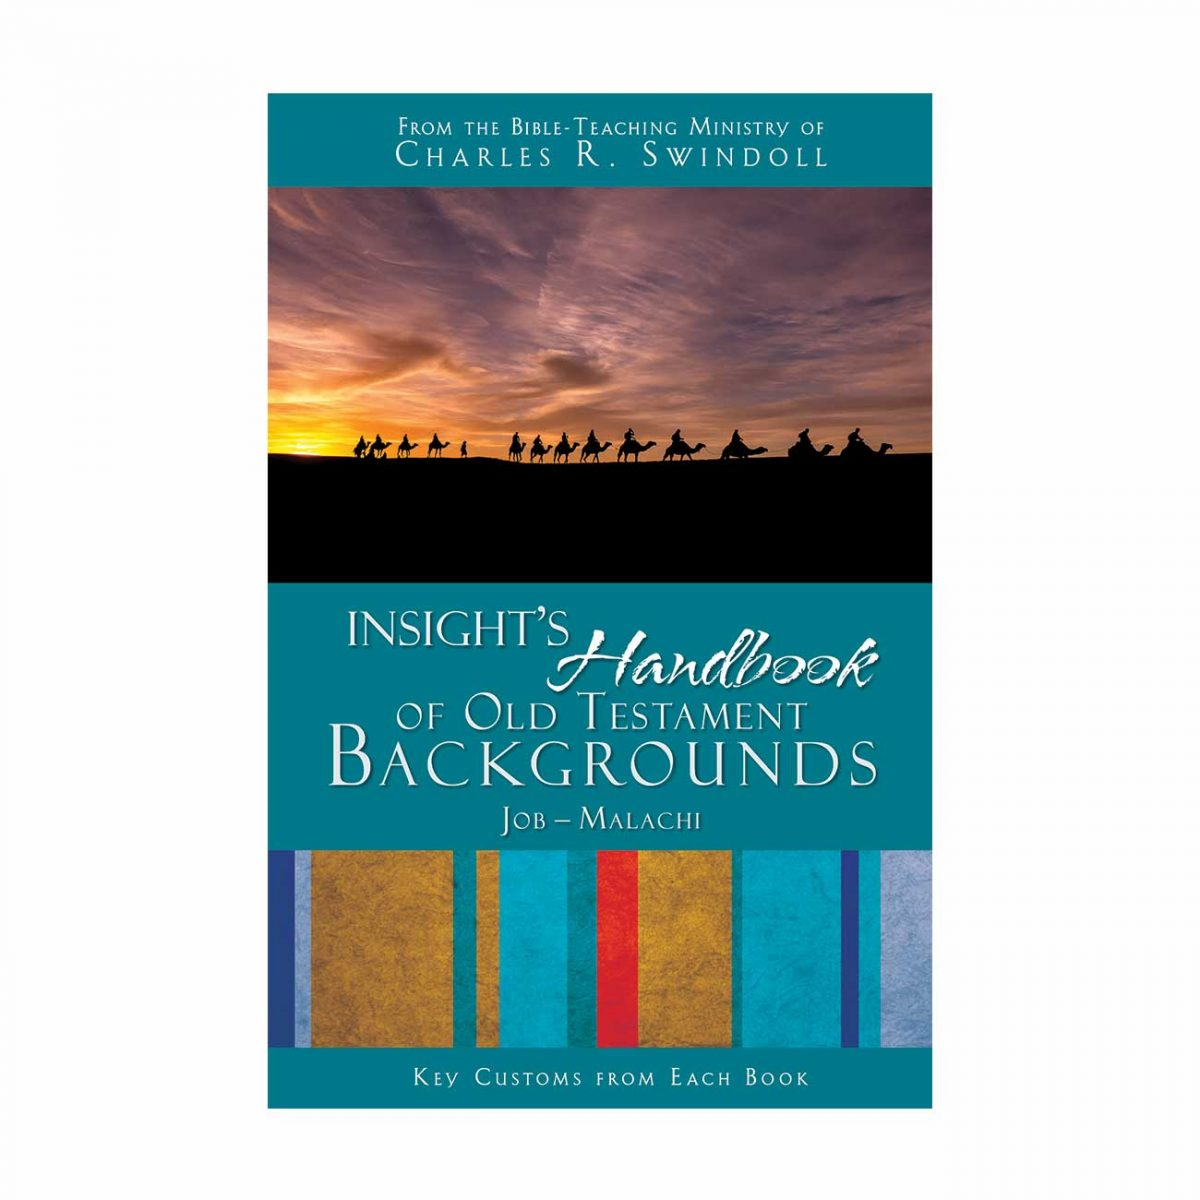 INSIGHT'S HANDBOOK OF OLD TESTAMENT BACKGROUND: Key Customs from Each Book, Job-Malachi